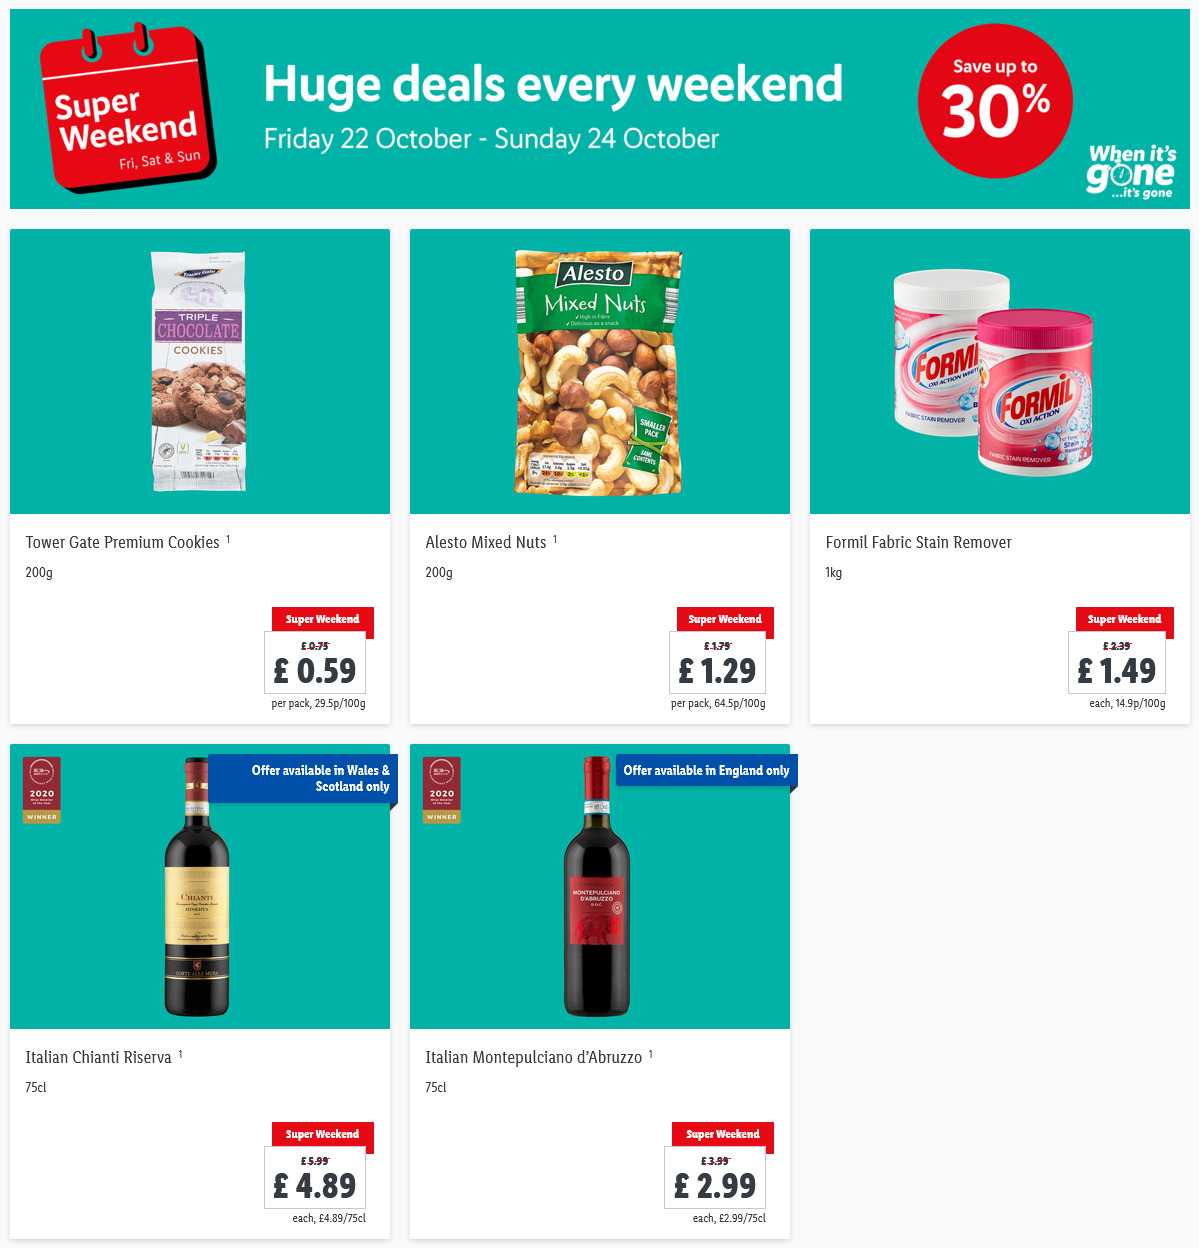 LIDL Weekend Offers from 22nd October – 24th October 2021 LIDL Super Weekend